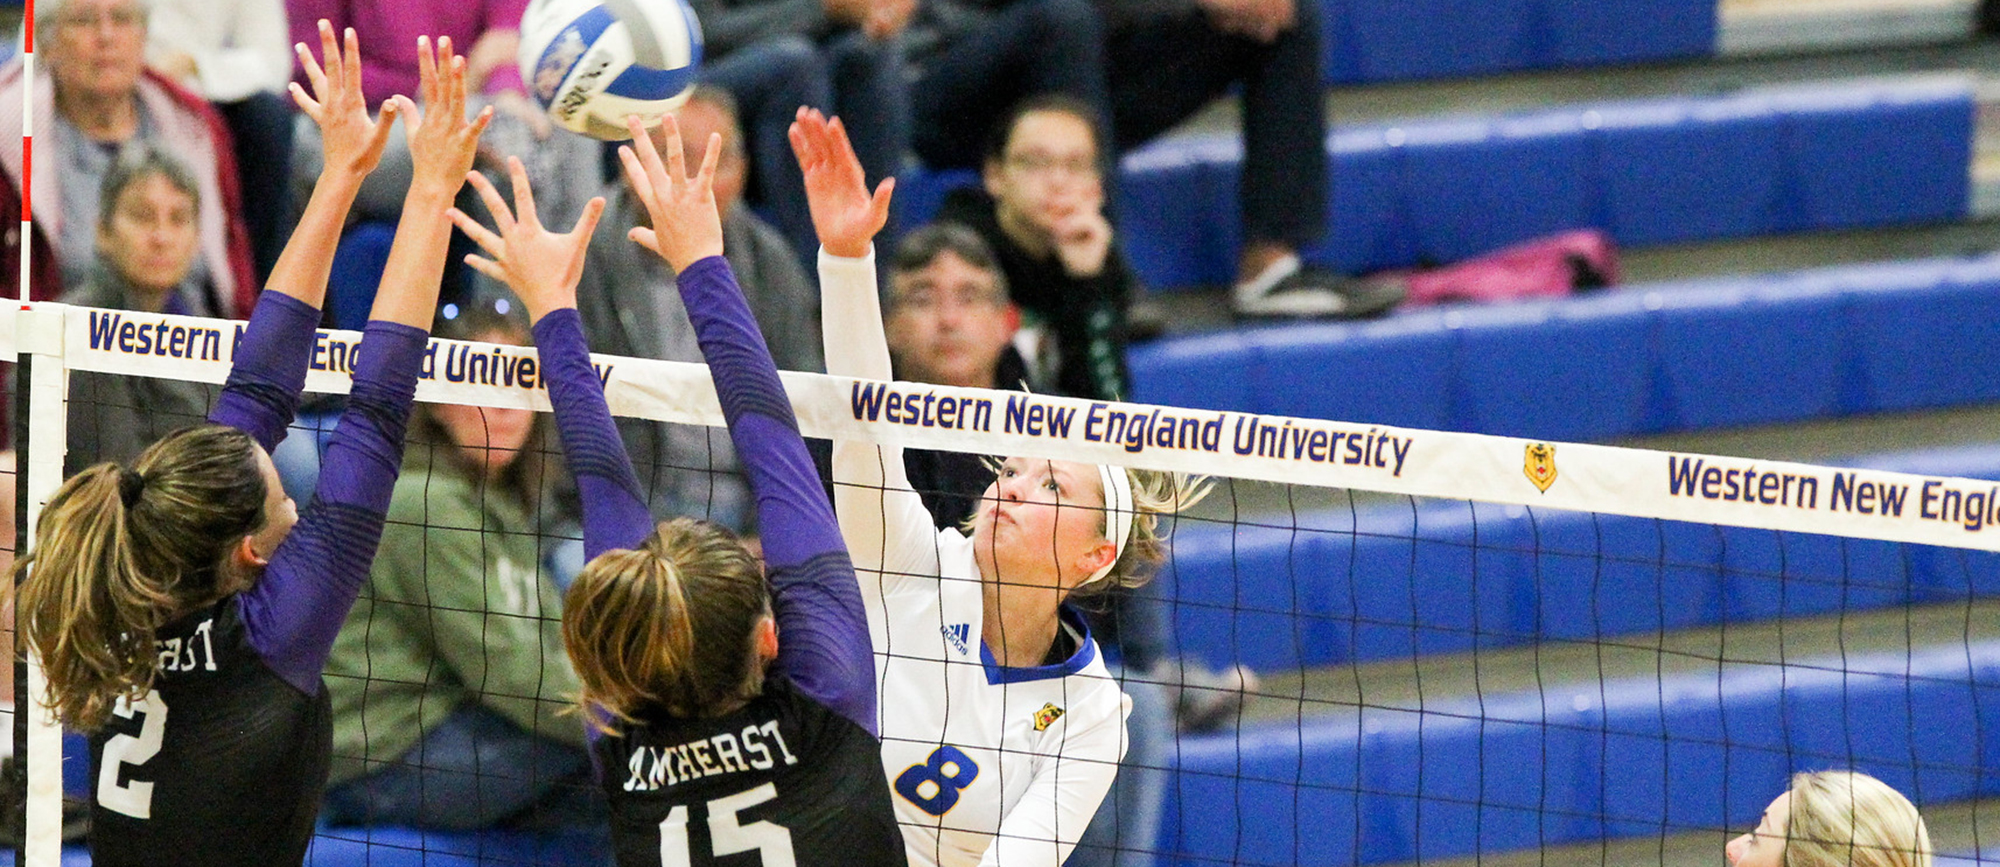 Senior Ashley Matthews recorded a career-high 20 kills in Western New England's 3-2 win over Framingham State on Tuesday night. (Photo by Chris Marion)